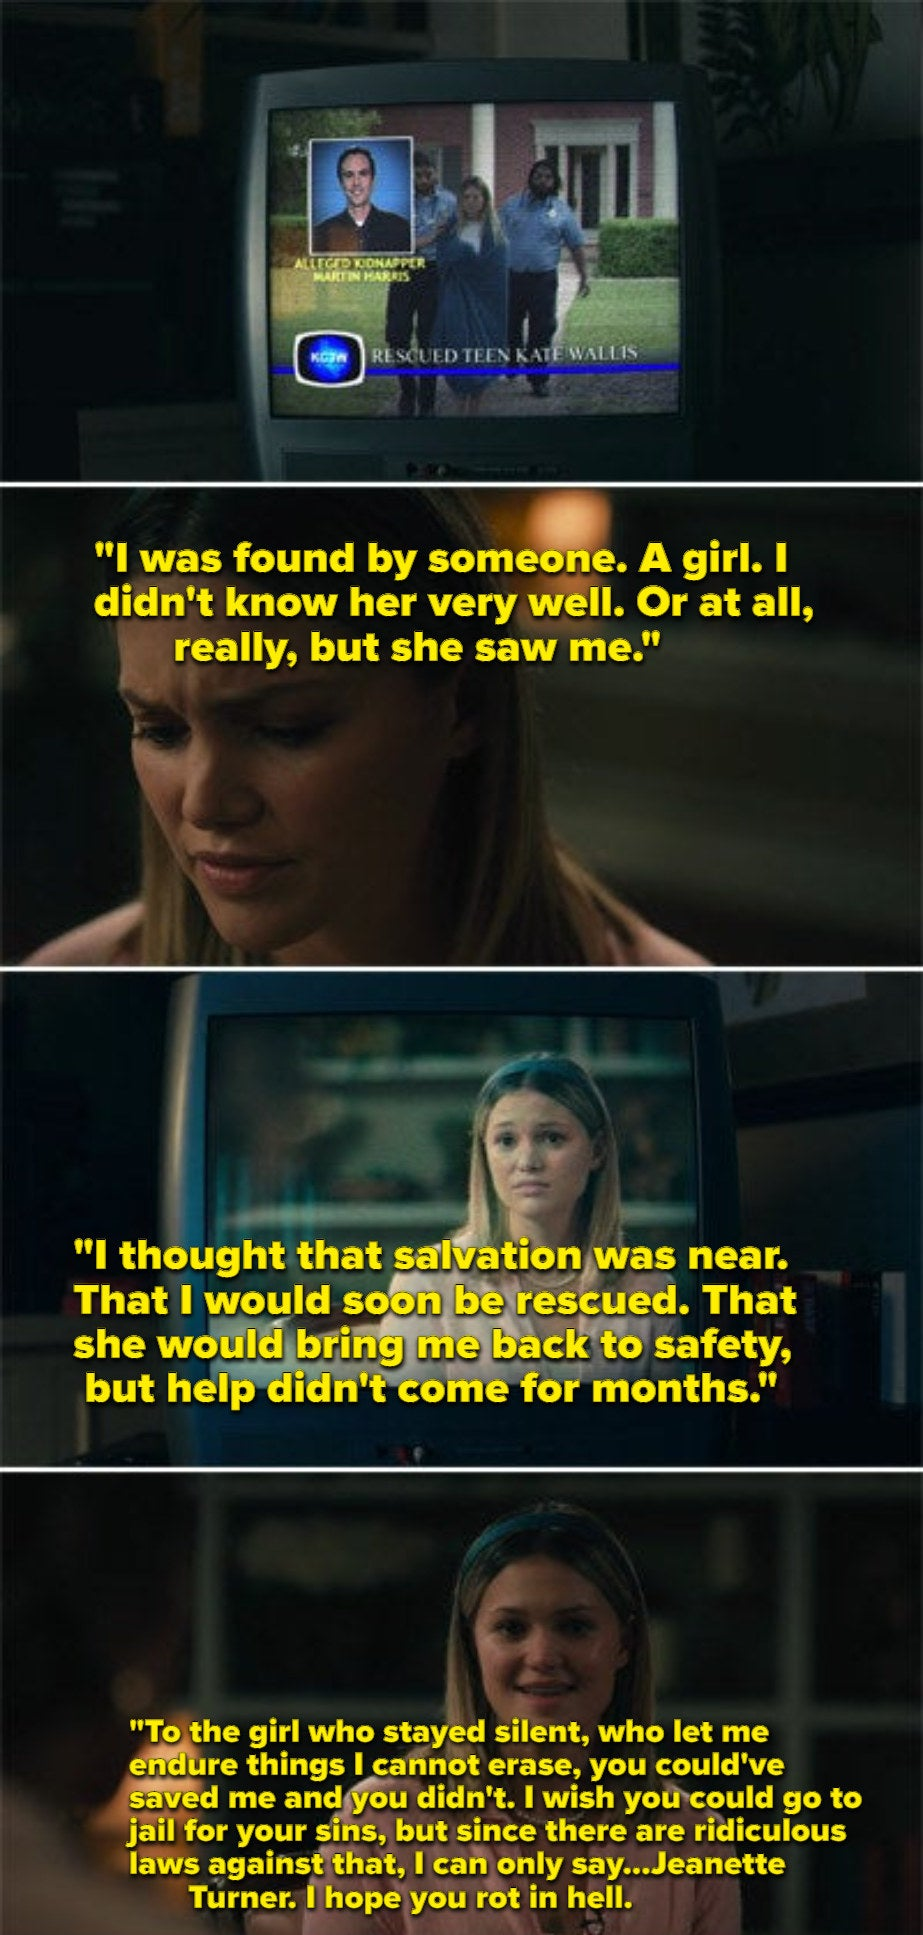 Kate on national television saying that Jeanette Turner saw her while she was being held captive